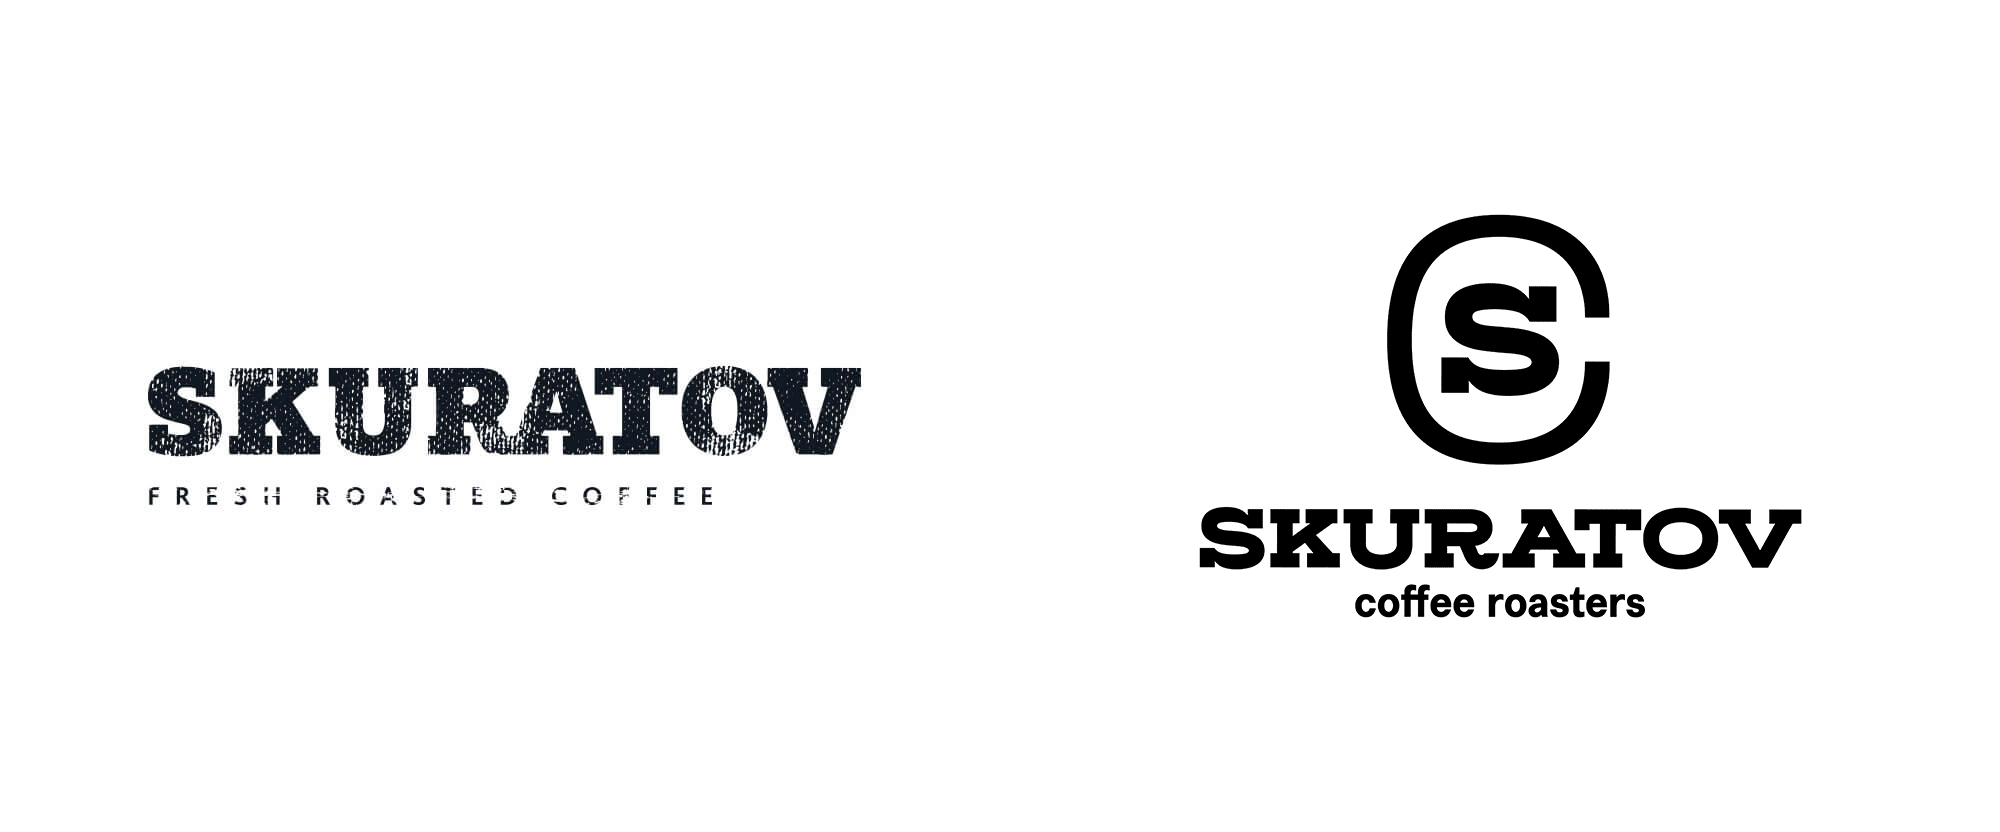 New Logo and Identity for Skuratov Coffee by White Russian Studio